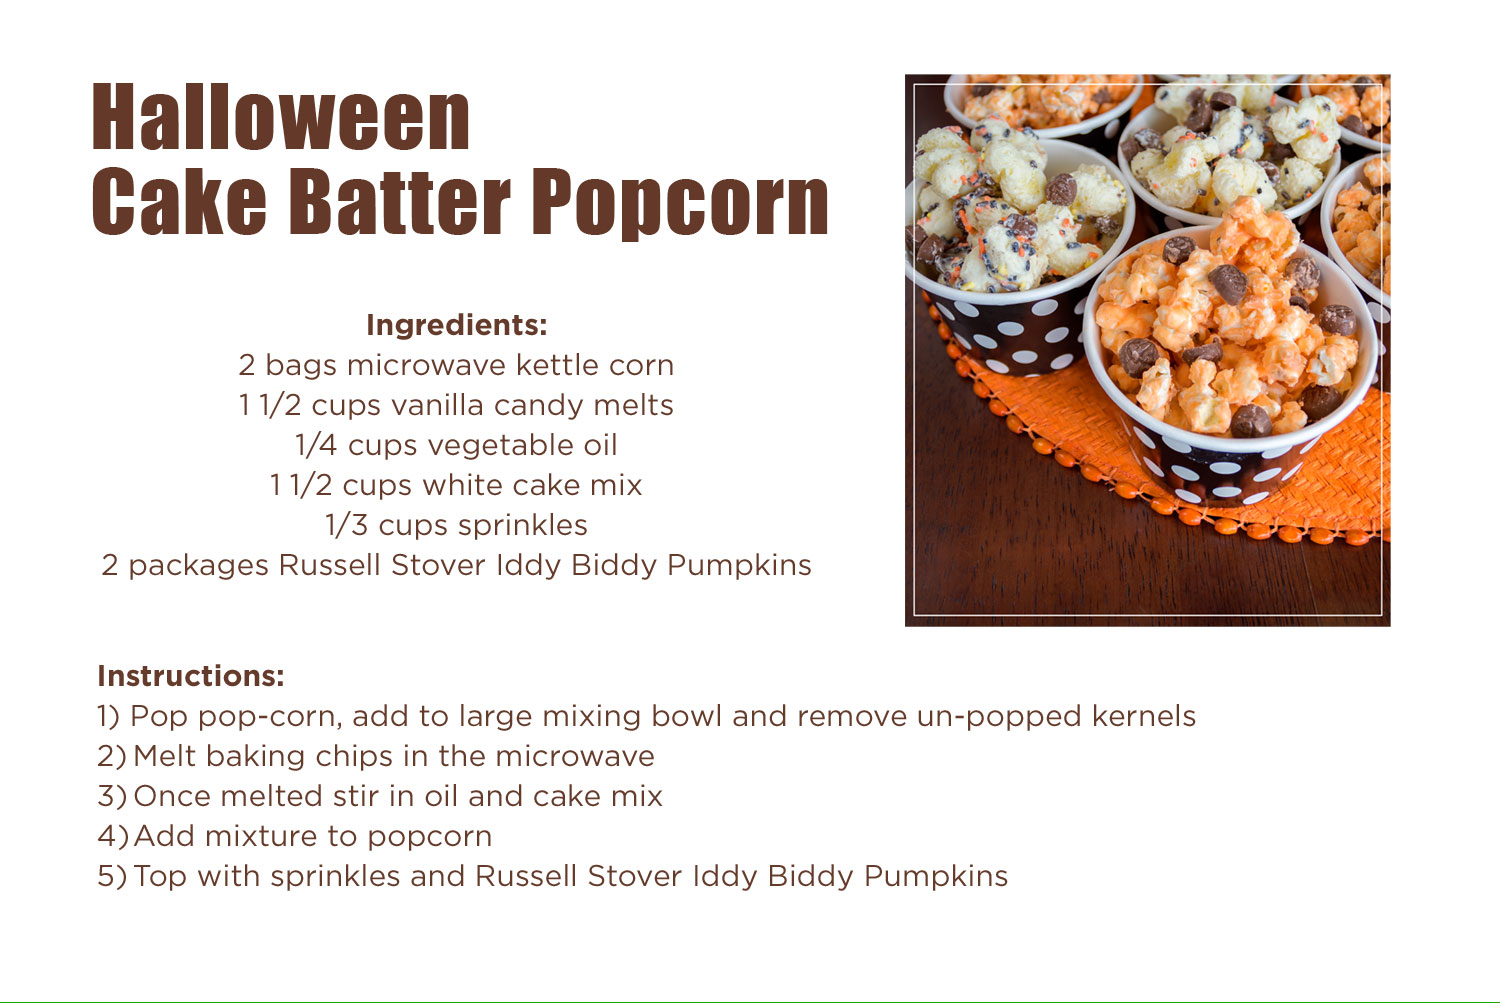 Recipe for Halloween Cake Batter Popcorn